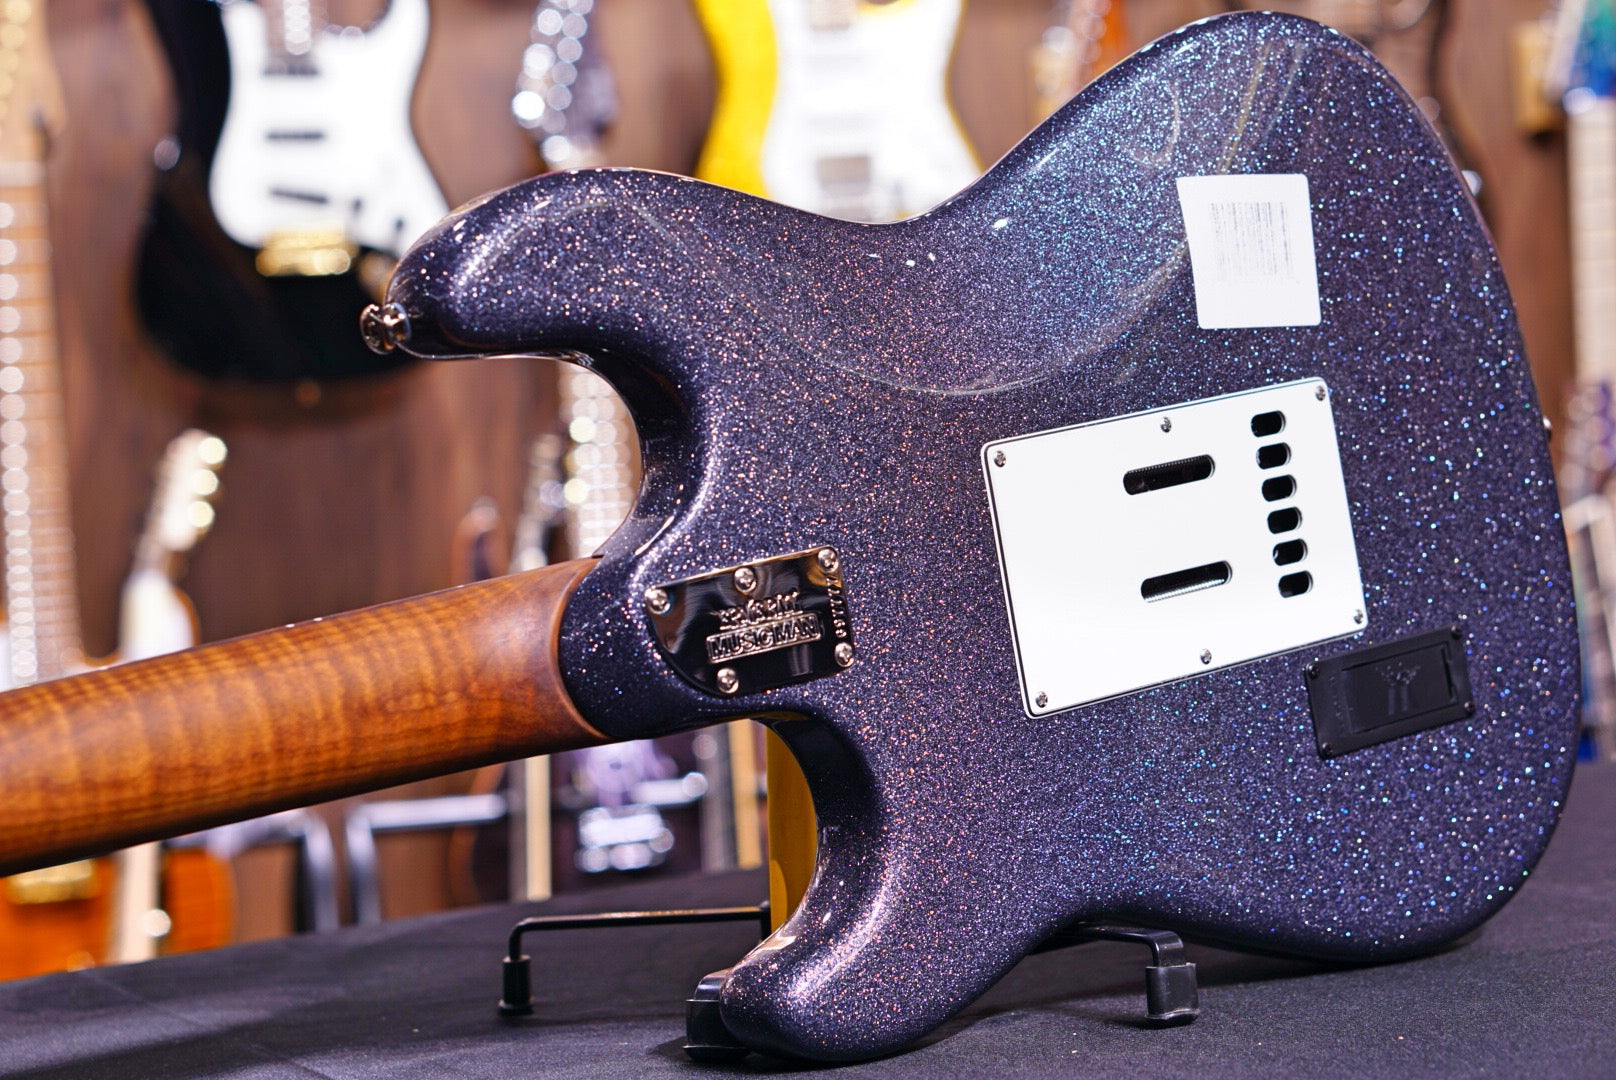 Ernie Ball Music Man Cutlass RS HSS - Charcoal Sparkle with Rosewood Fingerboard G97777